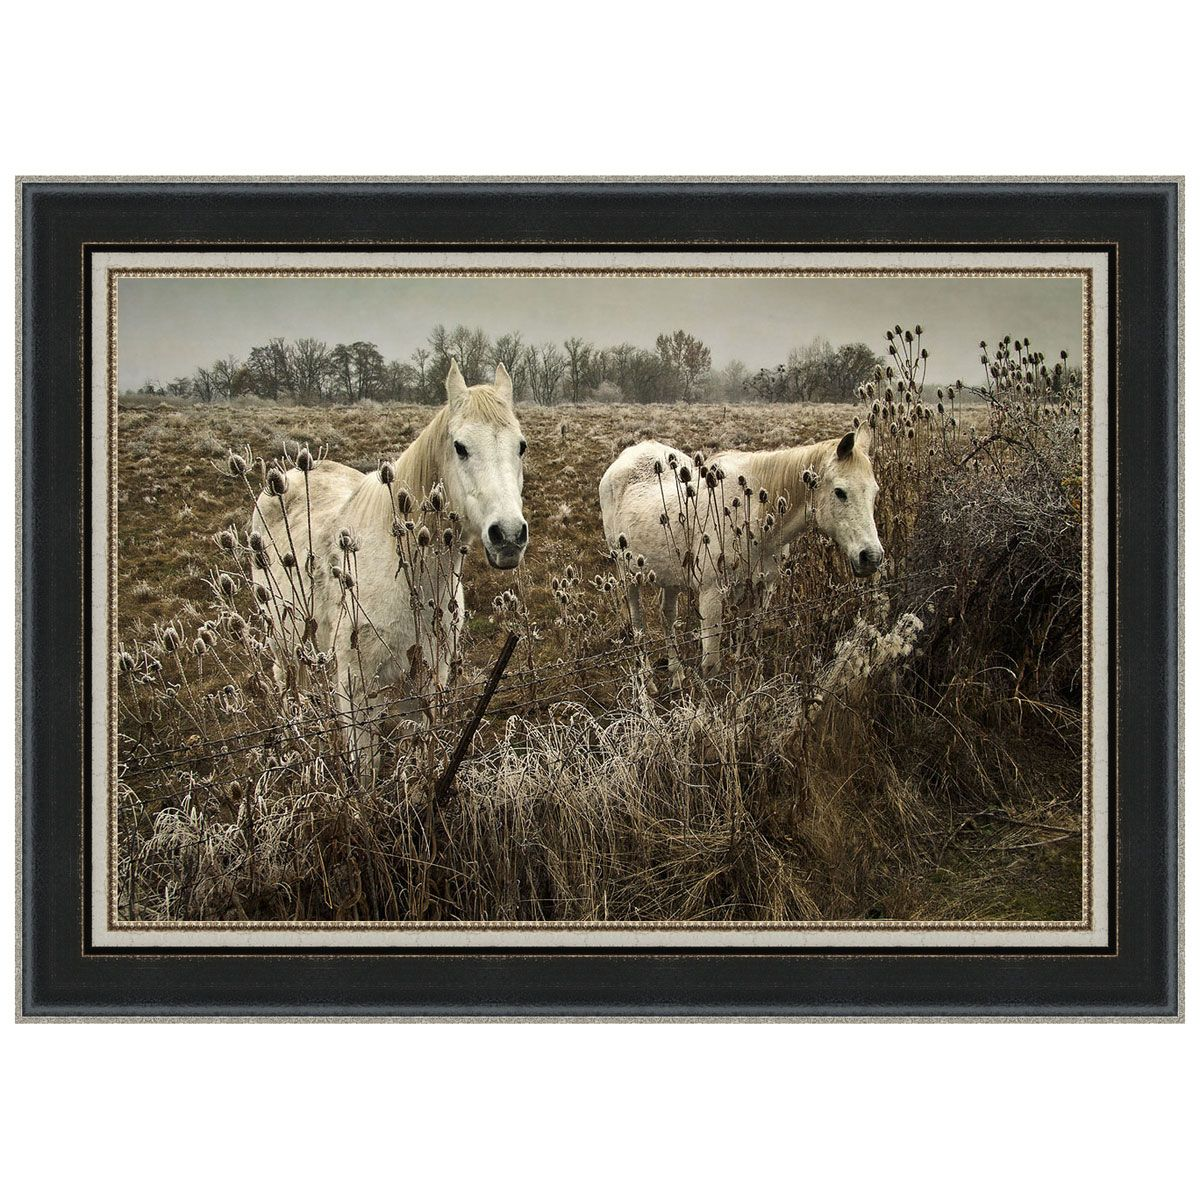 White Horses Framed Print